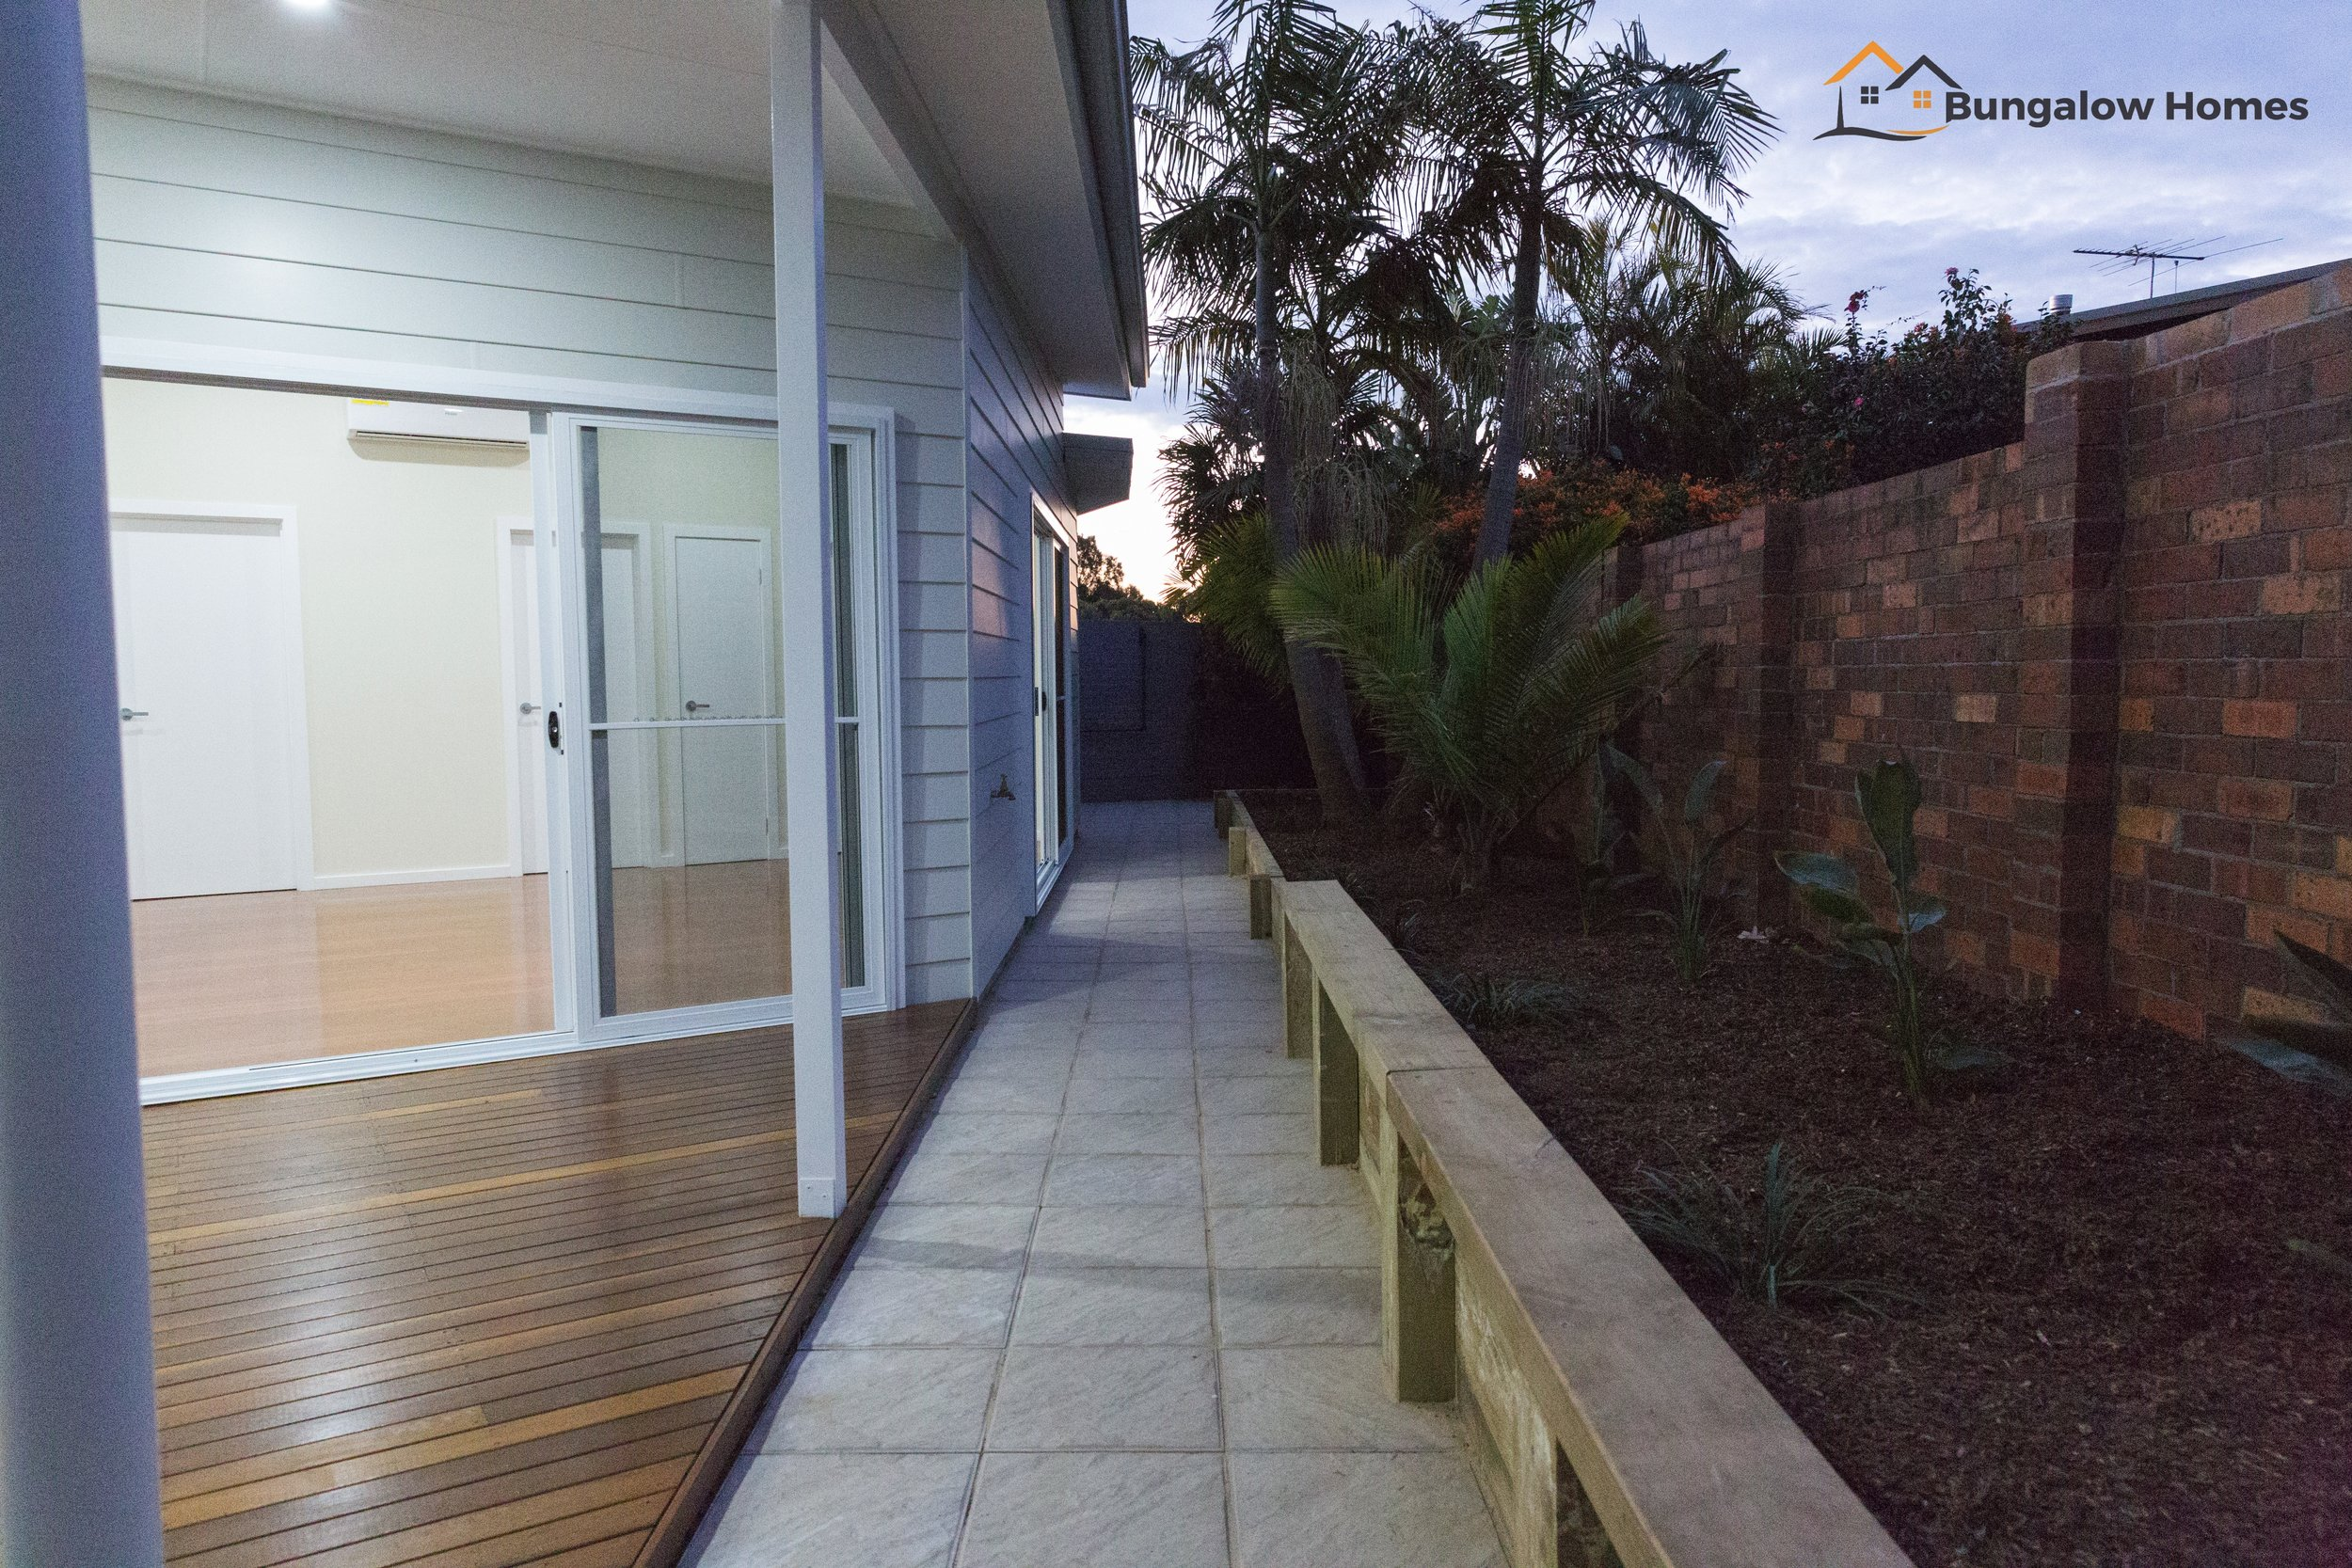 Bungalgow Homes Granny Flats northern beaches north shore sydney 43.jpg